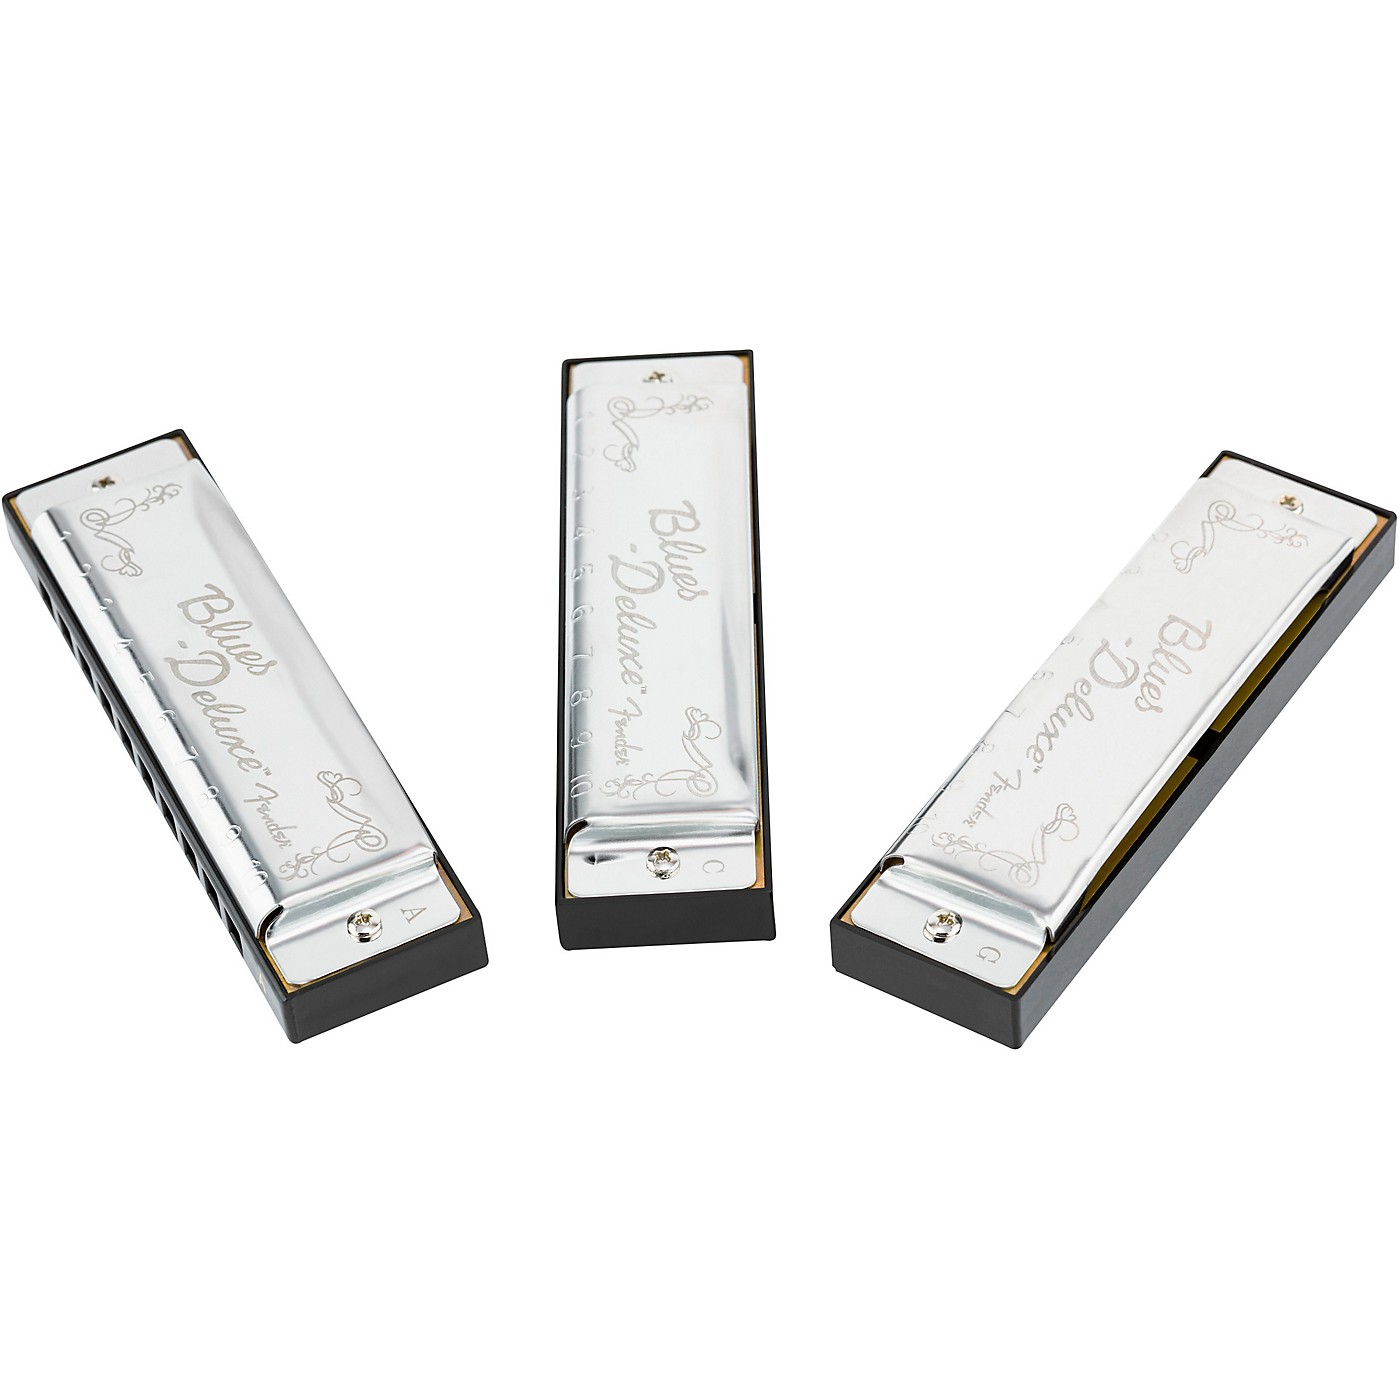 Fender Blues Deluxe Harmonicas (3-Pack with Case, Keys of C, G and A) thumbnail